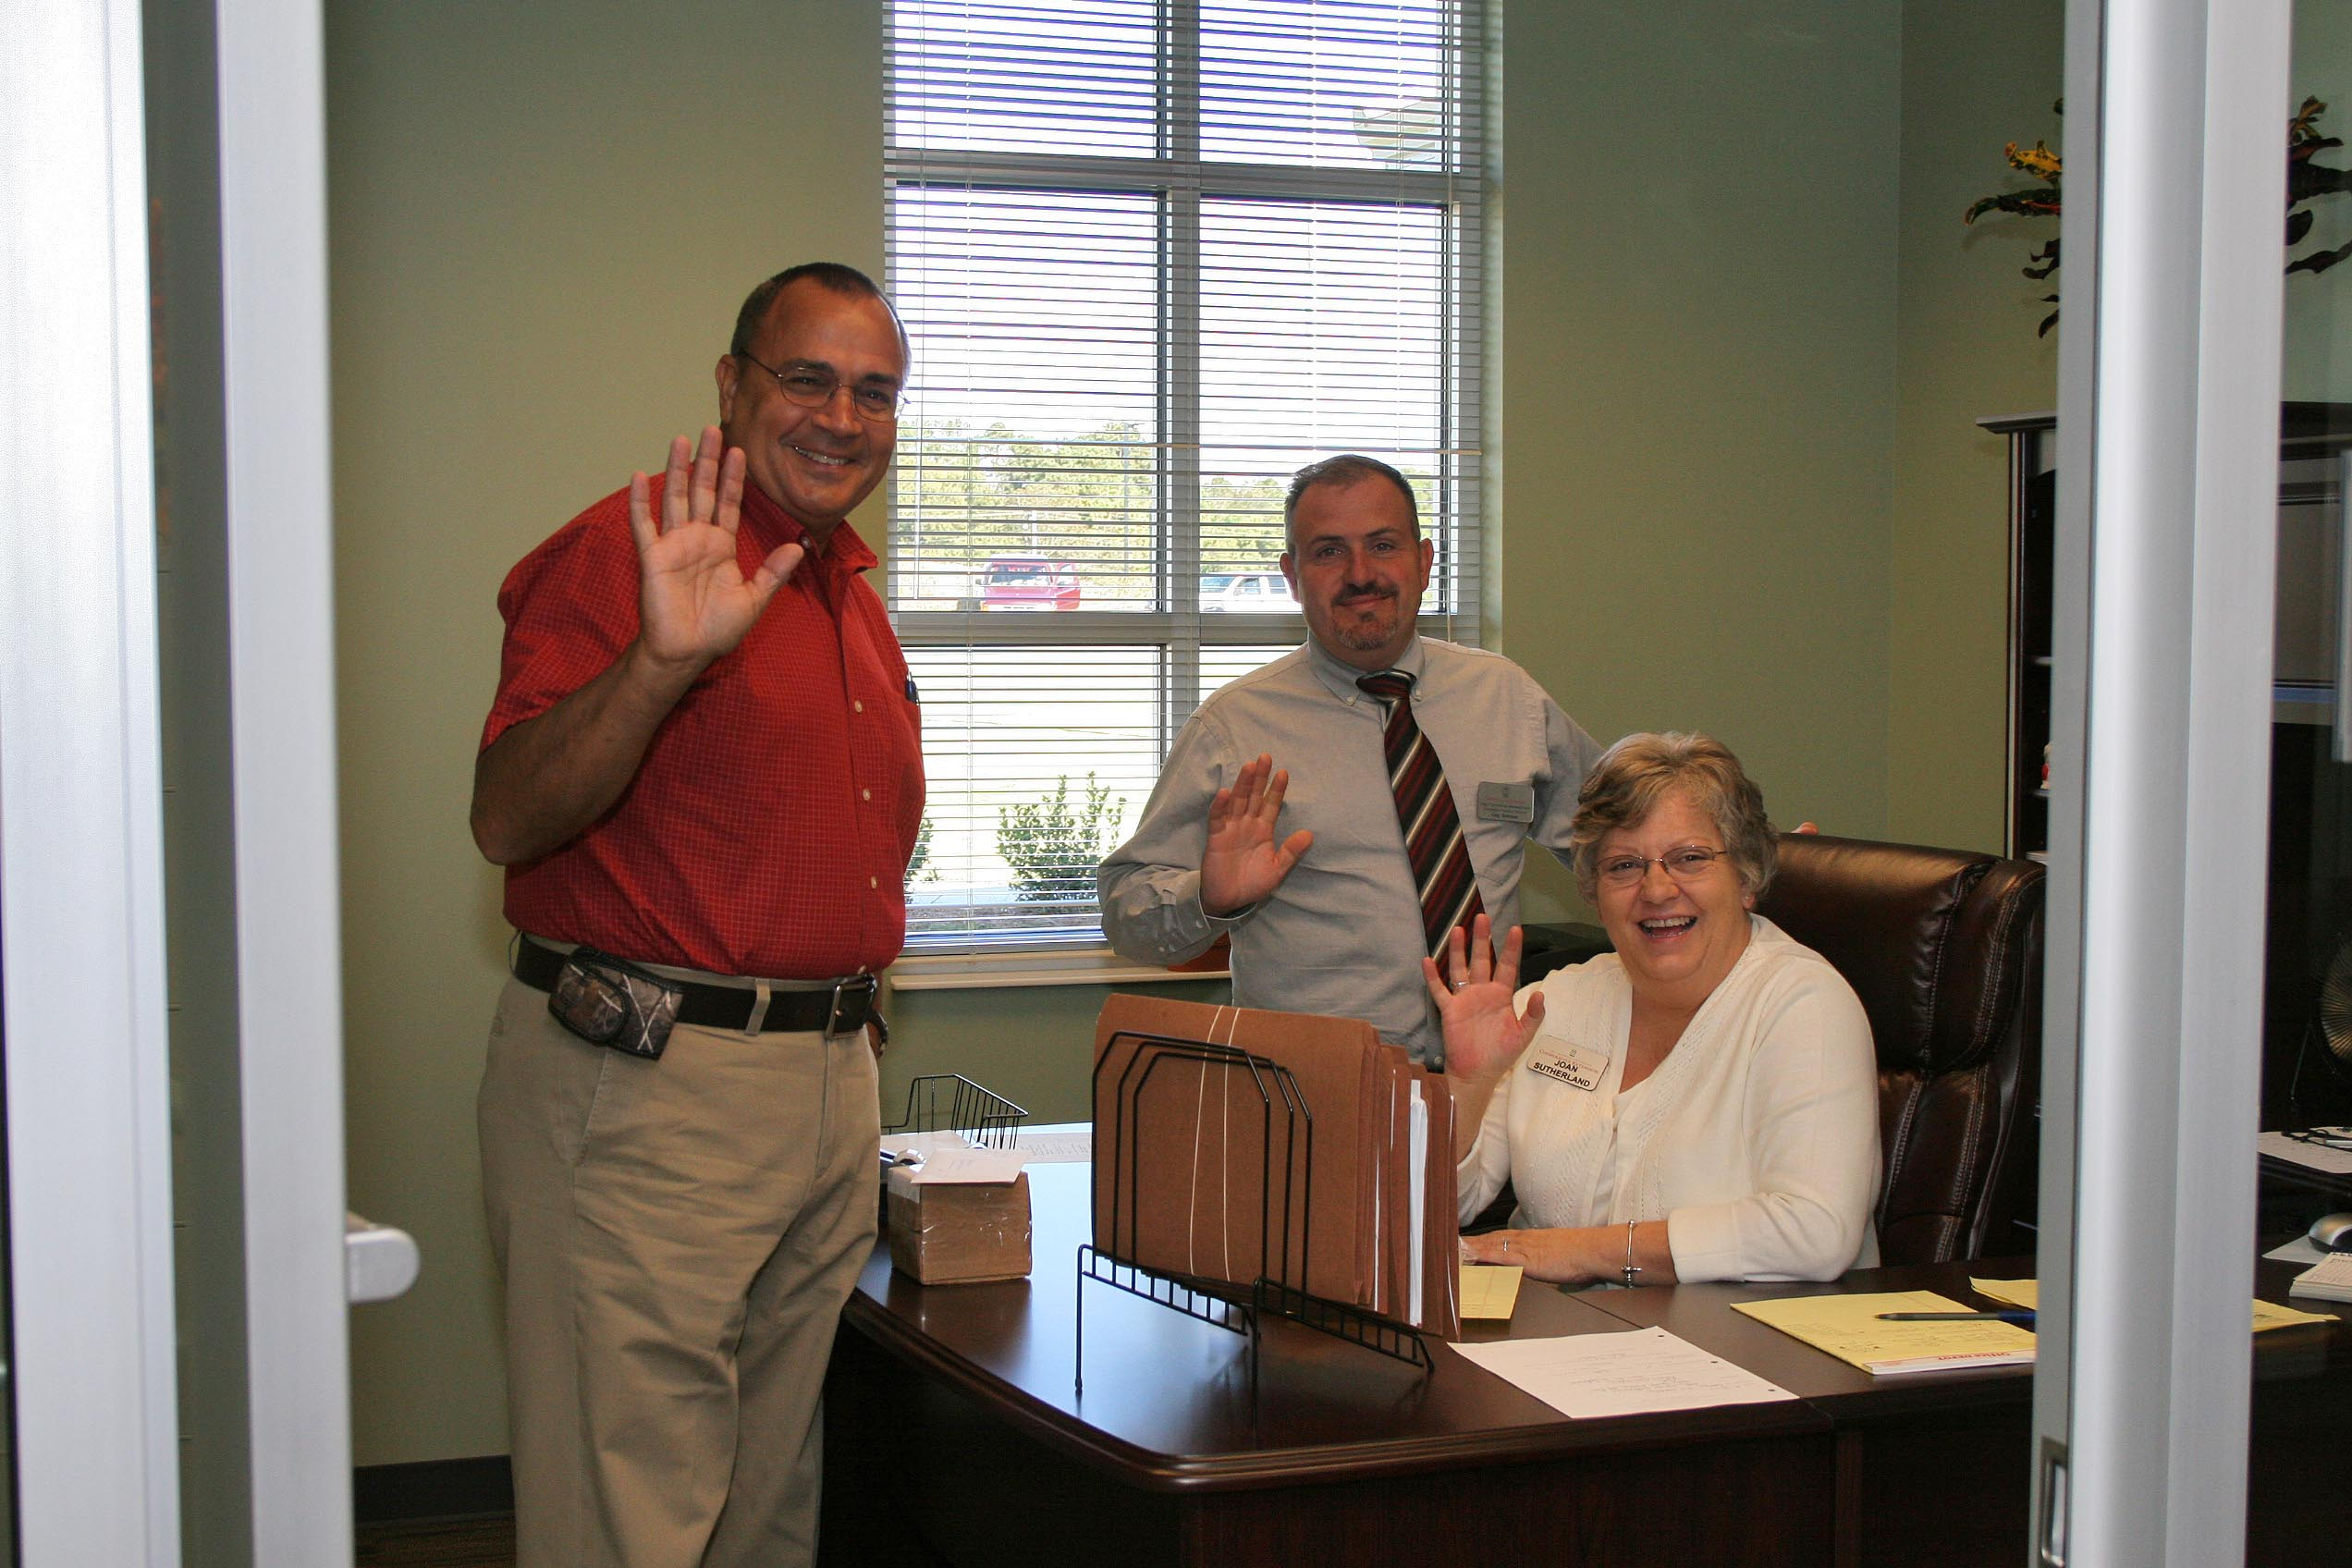 Former Gordon County Extension Agent Steve Moraitakis, current Gorden County Extension Coordinator Greg Bowman and Joan Sutherland, Gordon County Extension Secretary wave hello from their new headquarters at the Gordon County Ag Service Center.